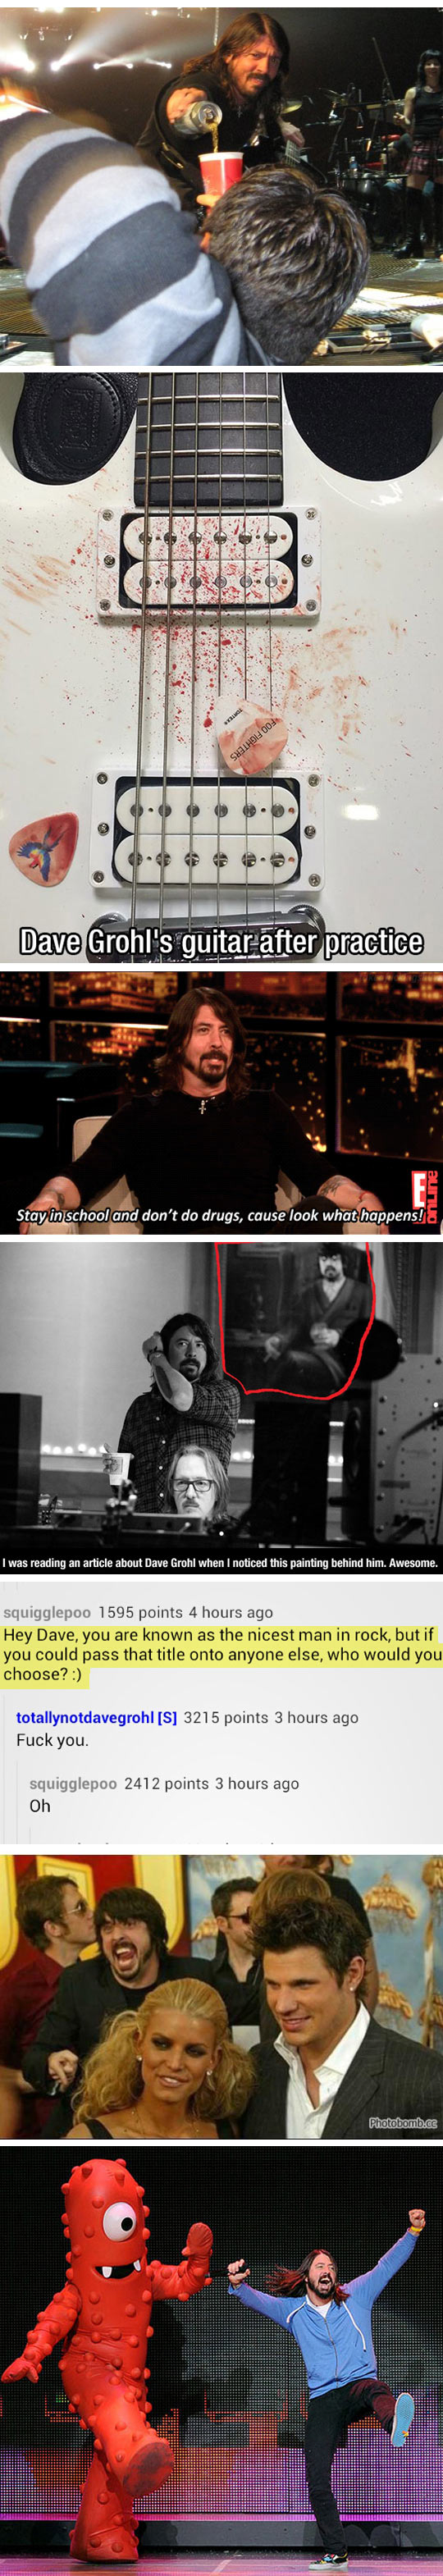 cool-Dave-Grohl-awesome-person-dancing